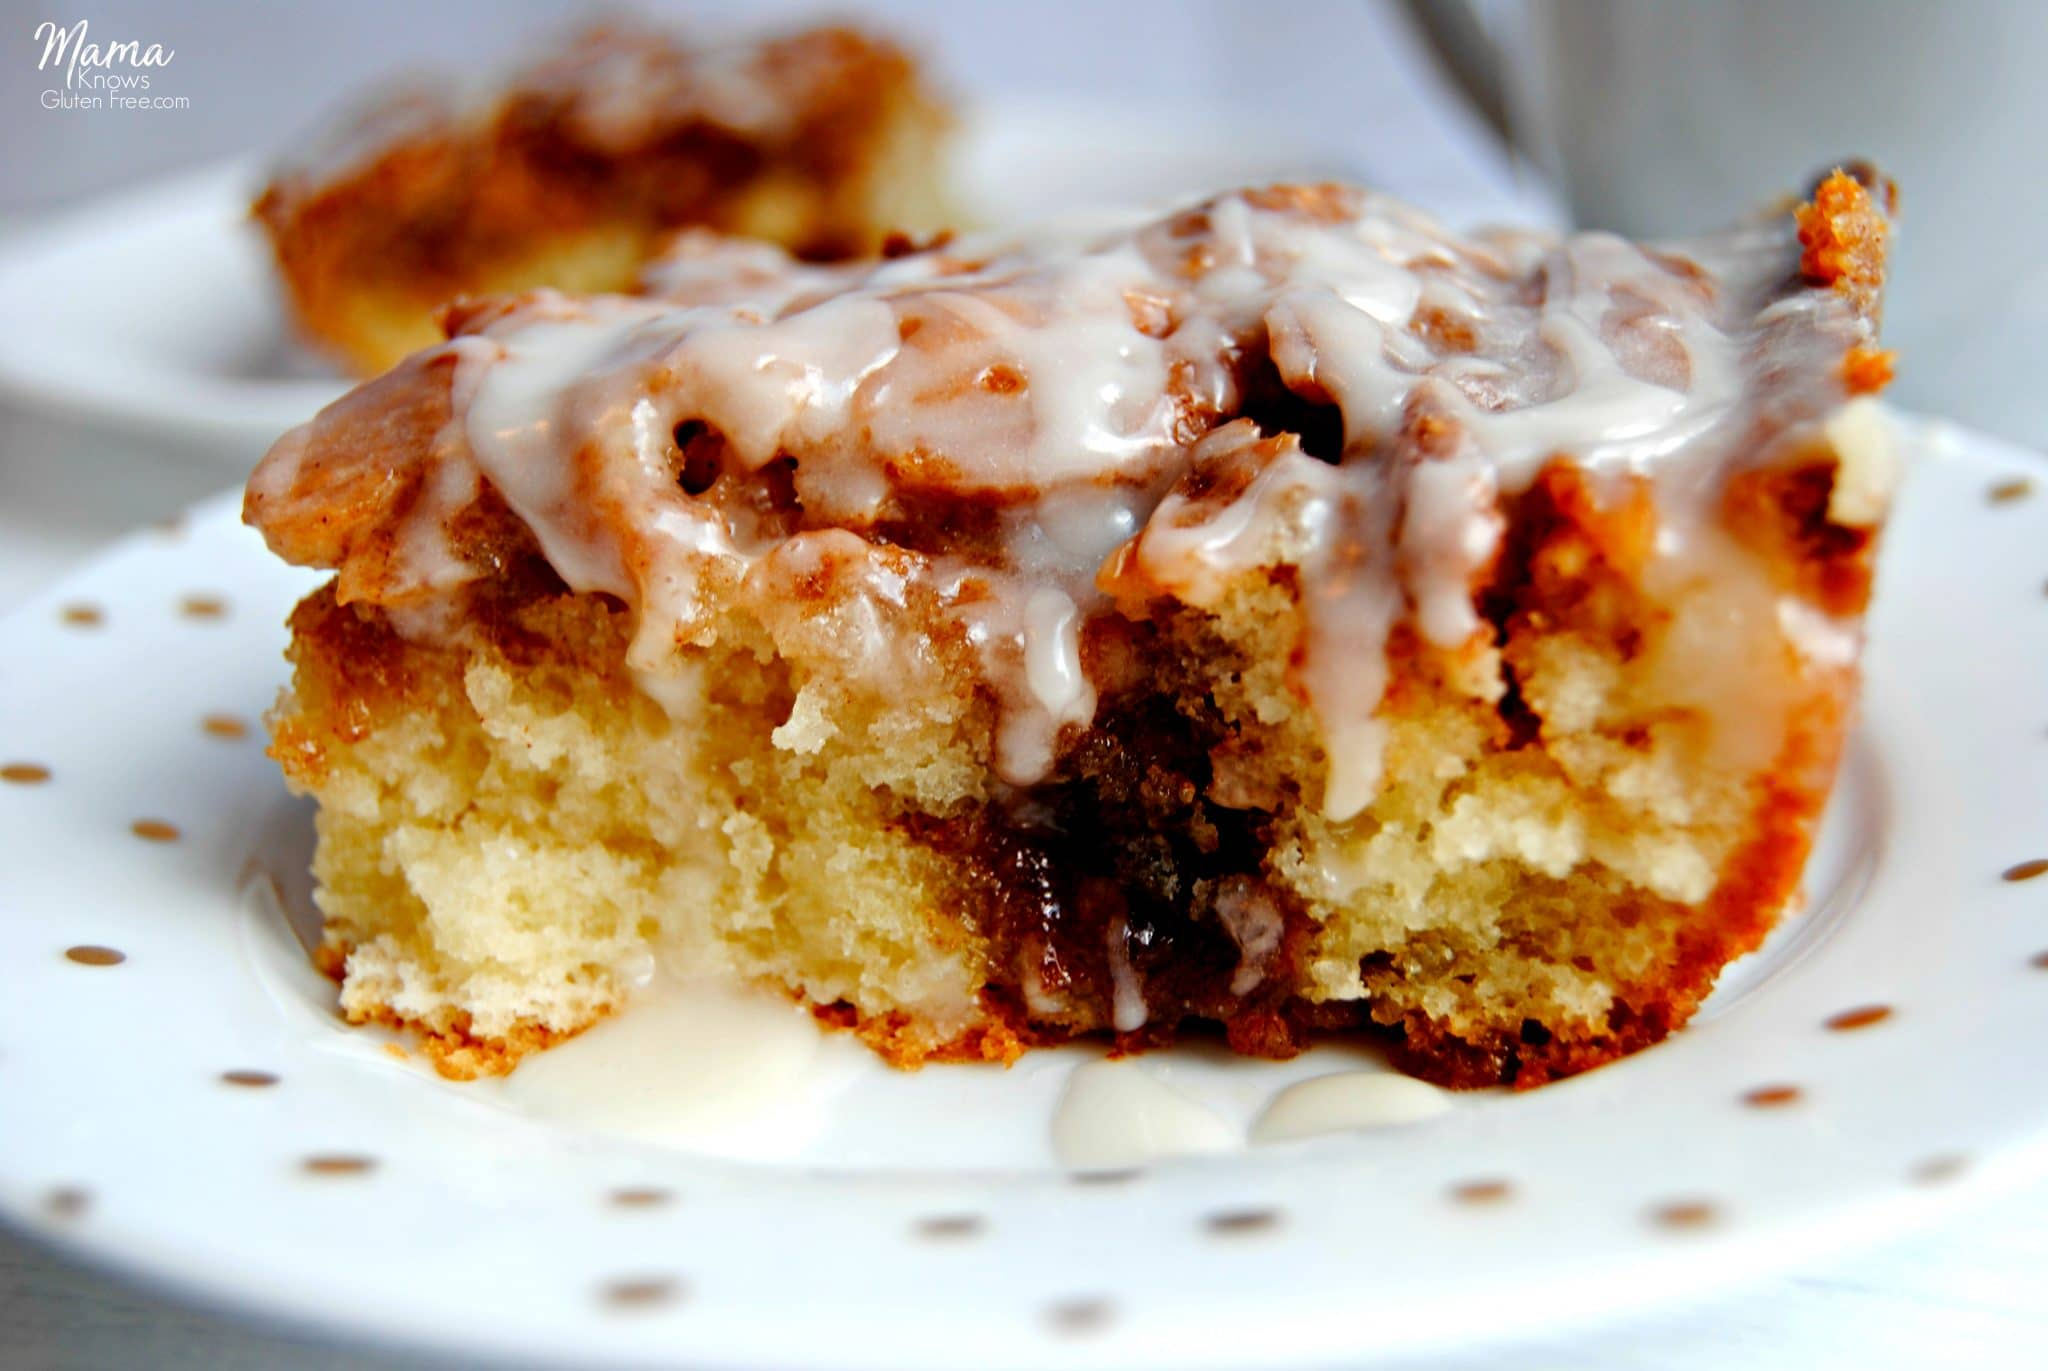 two slices of gluten-Free cinnamon roll cake on white plates with a white coffee cup.